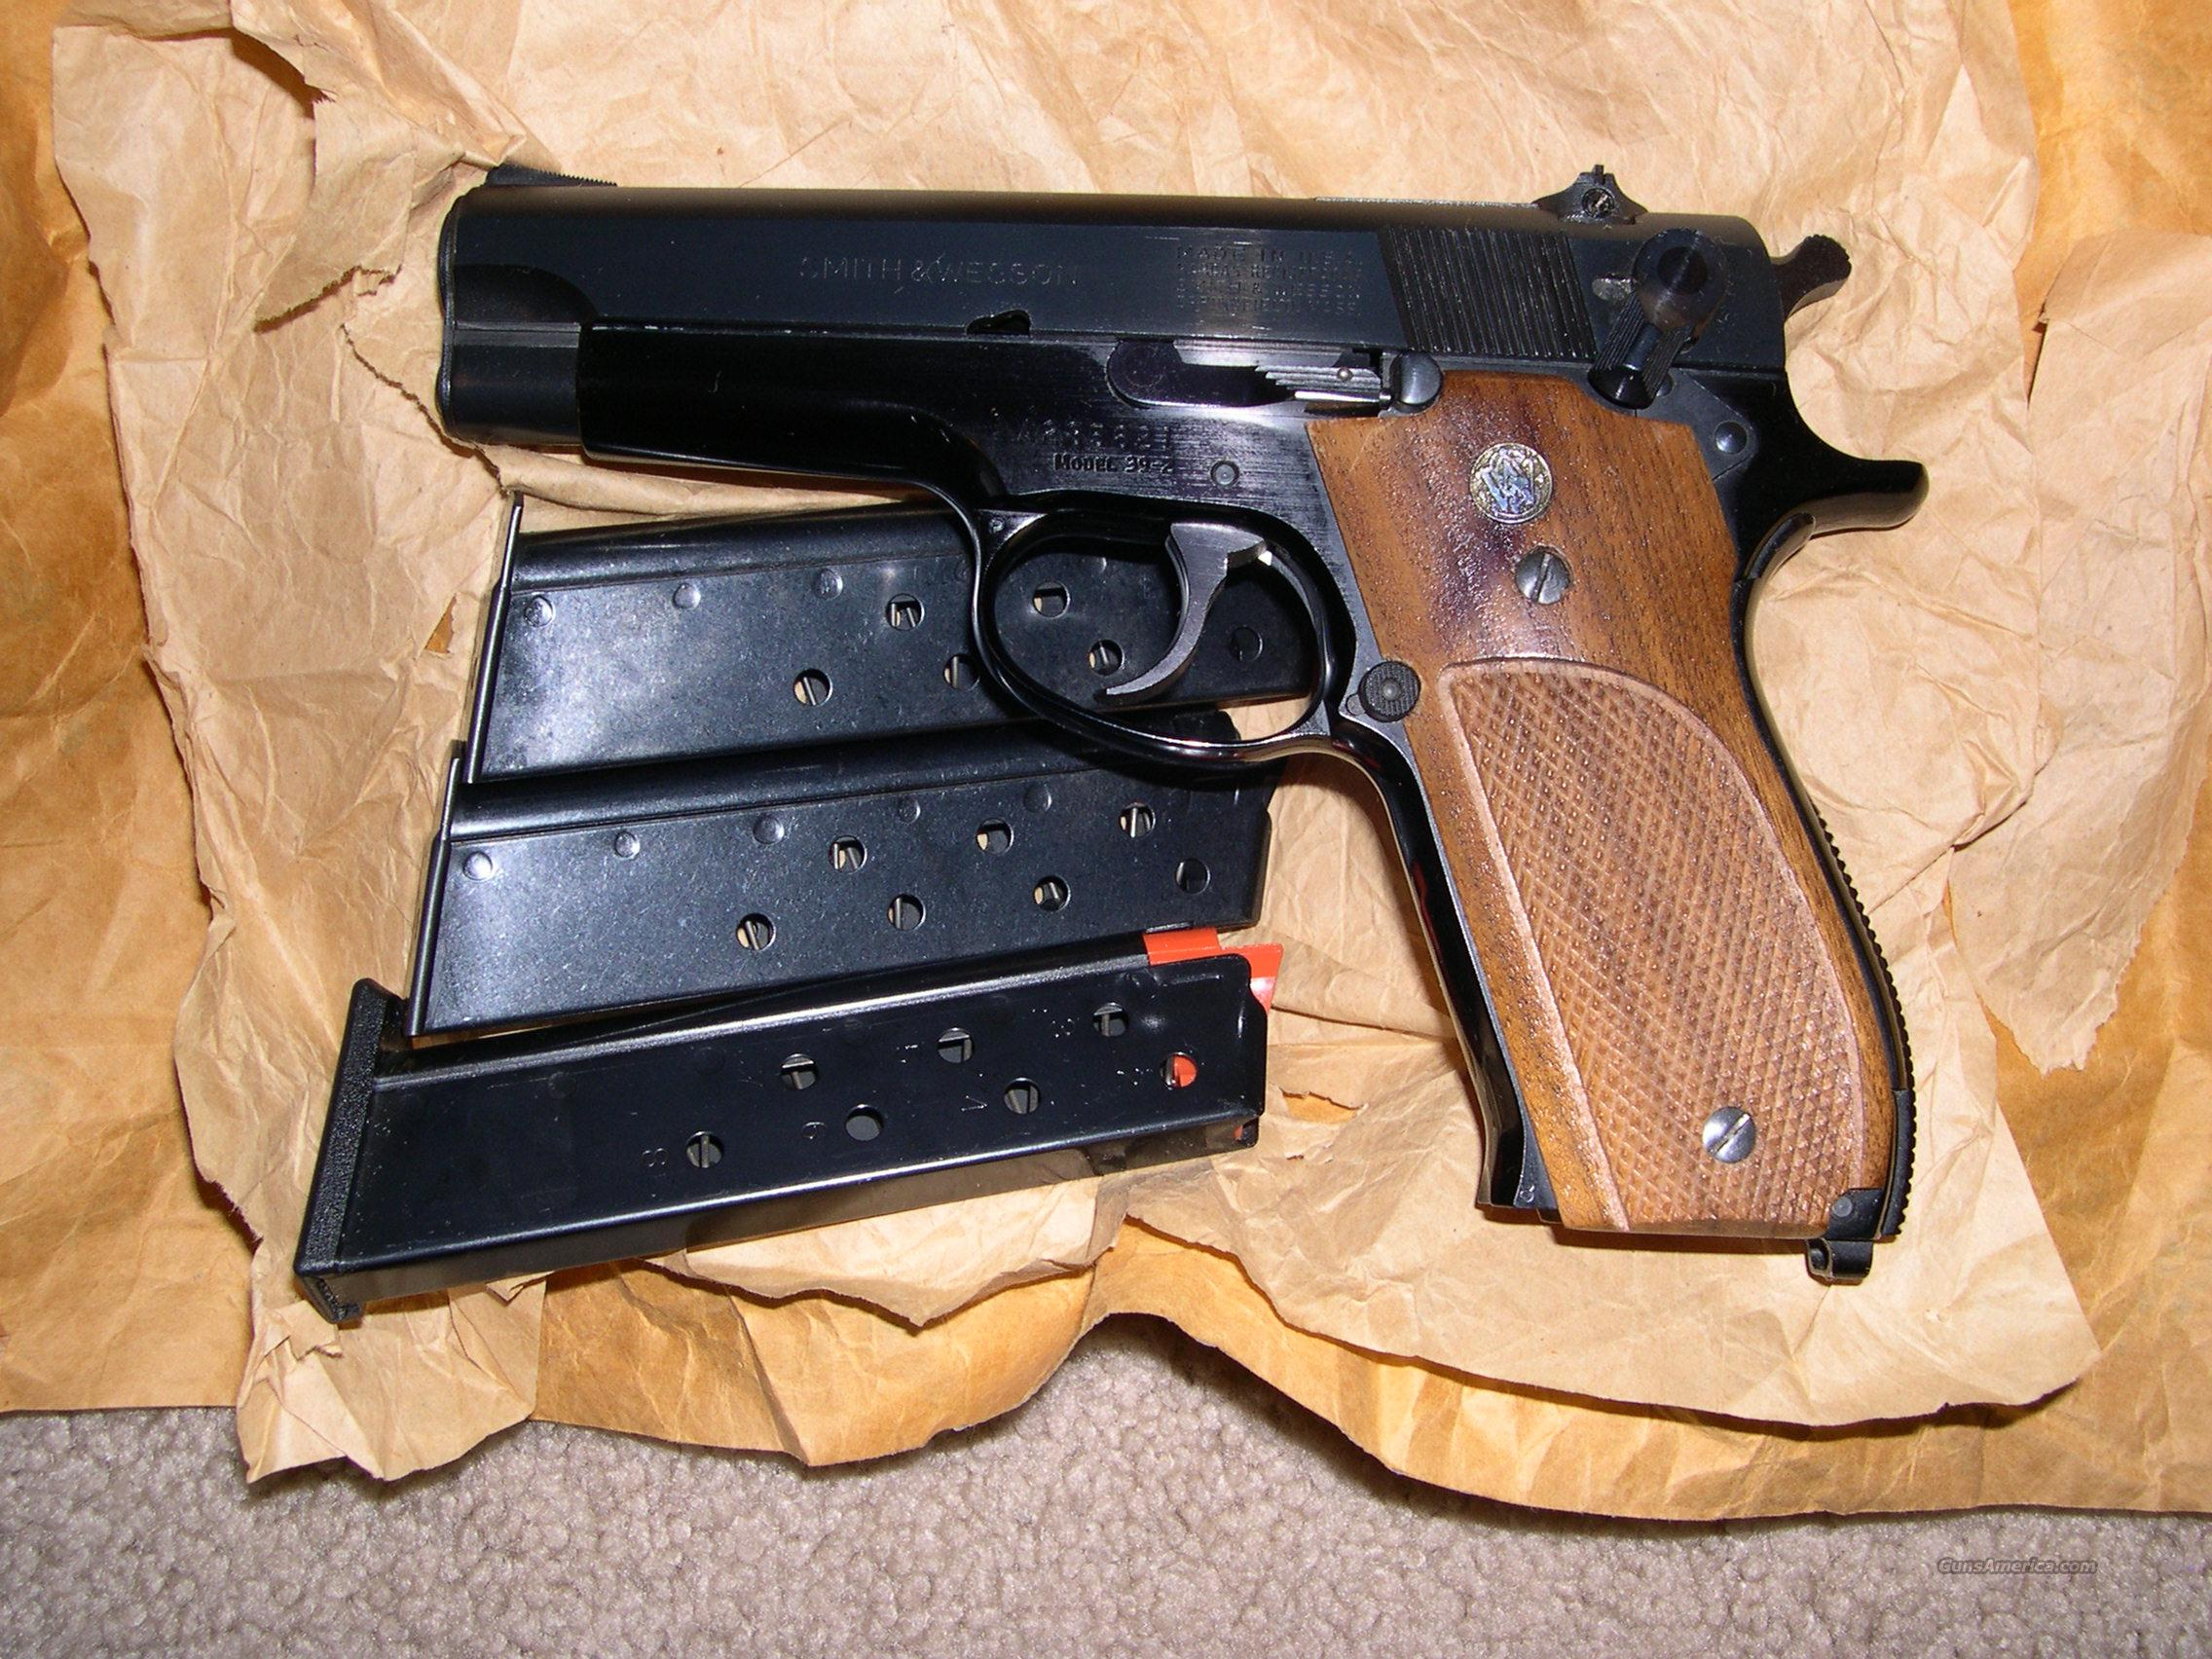 Smith&Wesson model 39-2  Guns > Pistols > Smith & Wesson Pistols - Autos > Alloy Frame